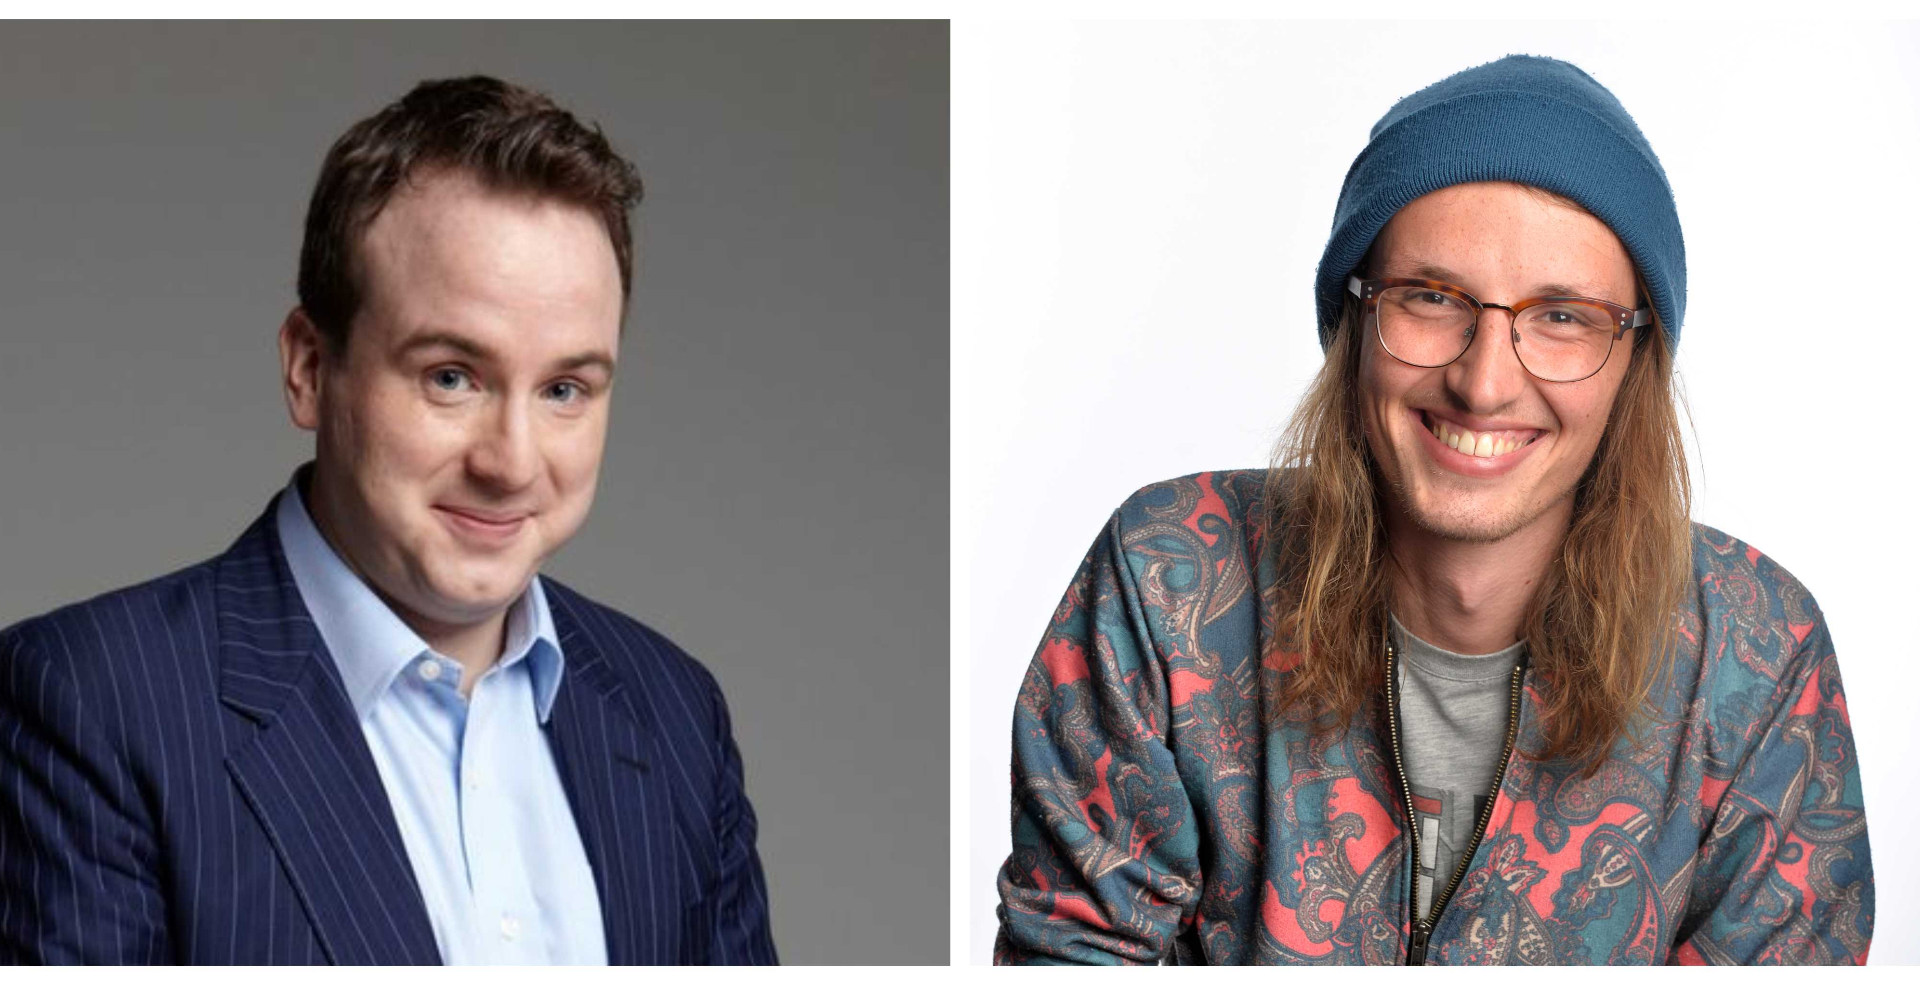 Good Ship Comedy presents Matt Forde and Andy Field